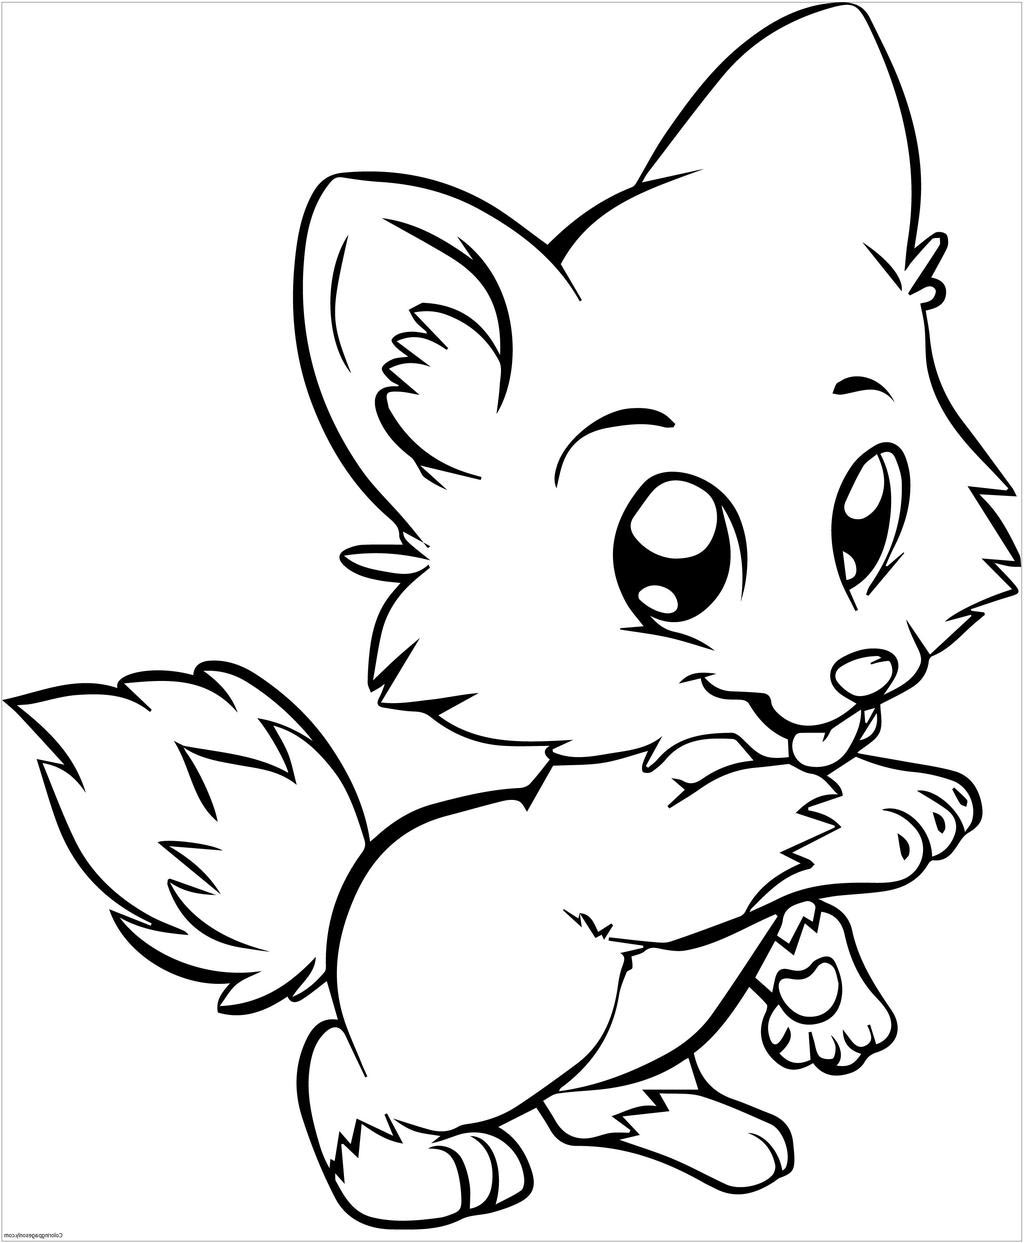 1024x1243 Cat And Dog Cartoon Drawing Simple Cute Free Pictures Outline